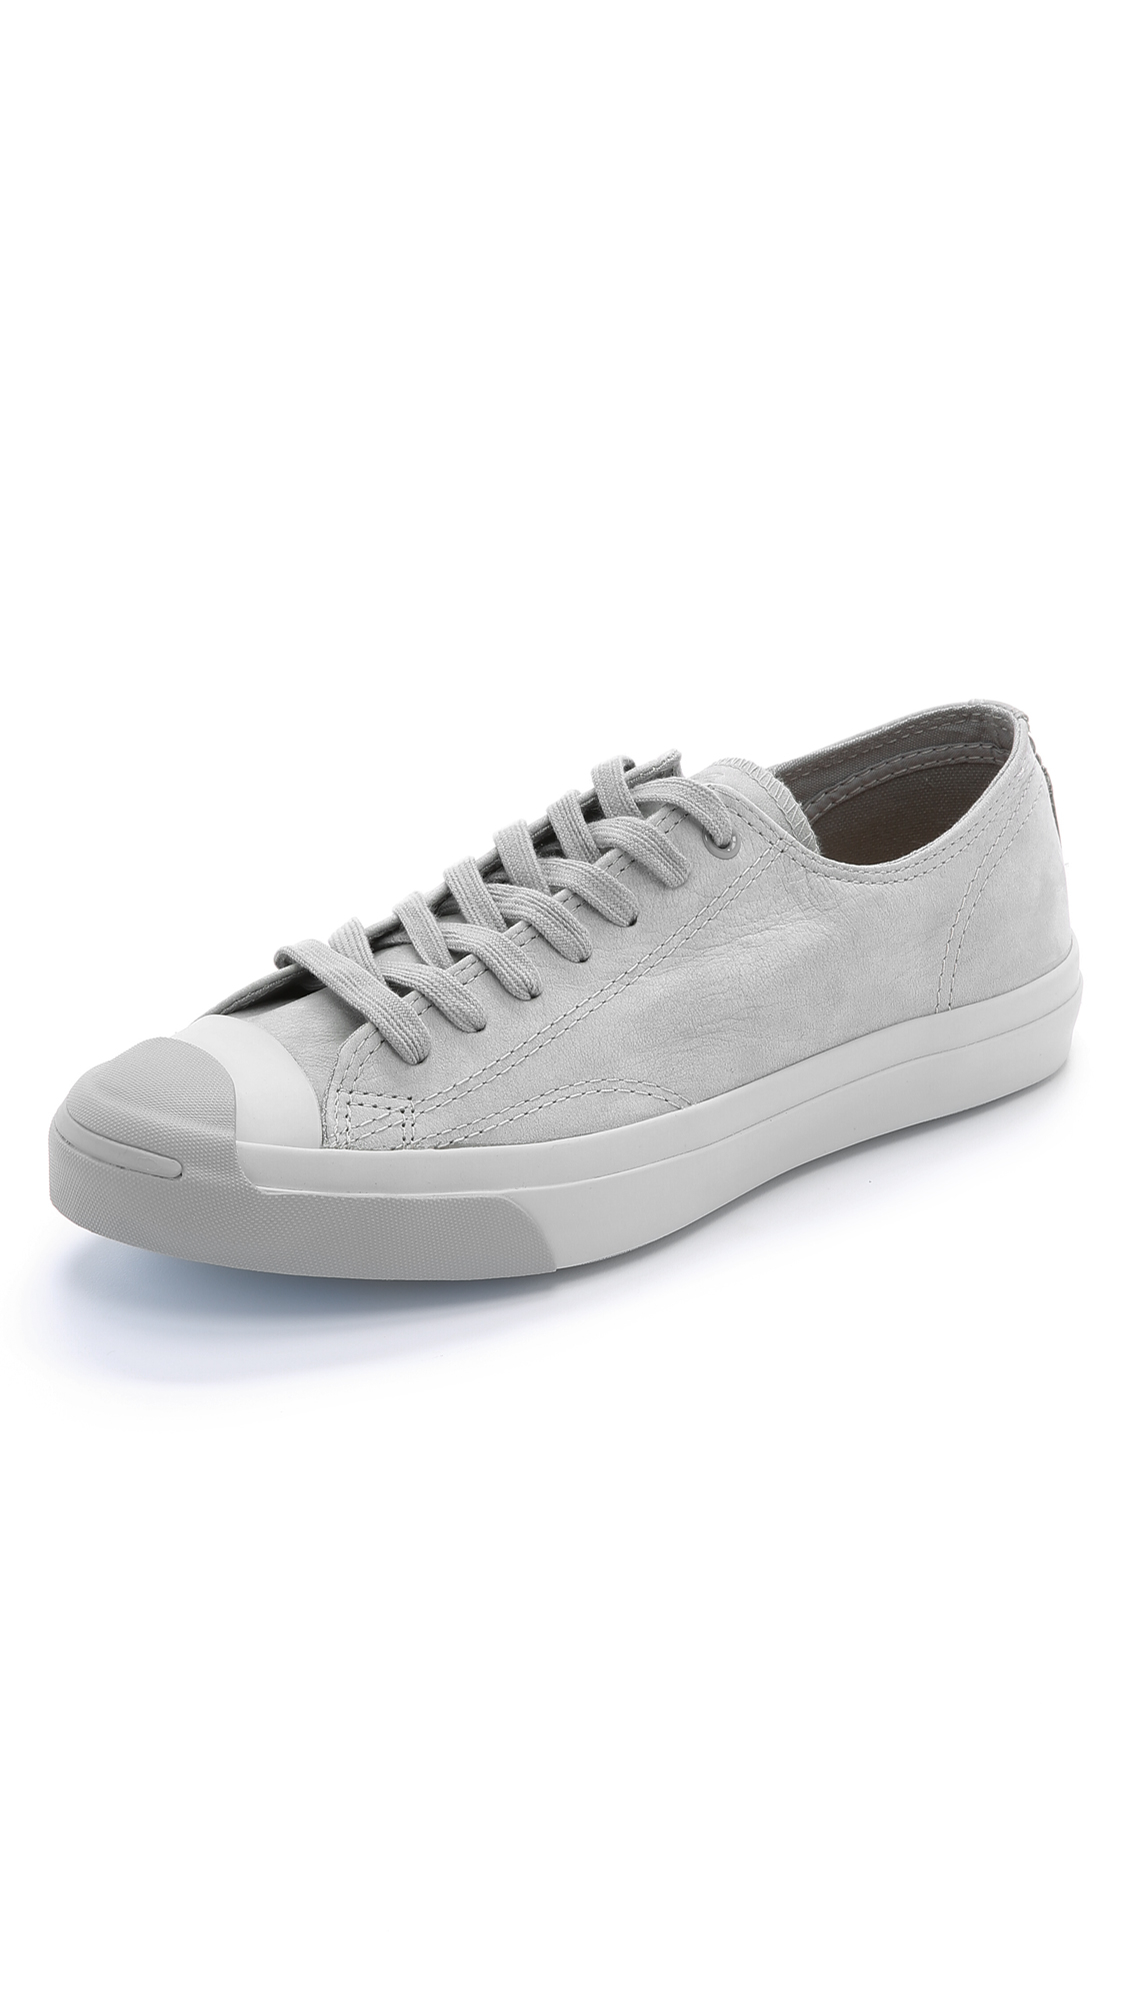 7ecc5207be6 ... clearance lyst converse jack purcell jack nubuck sneakers in gray for  men 07a2c 794e8